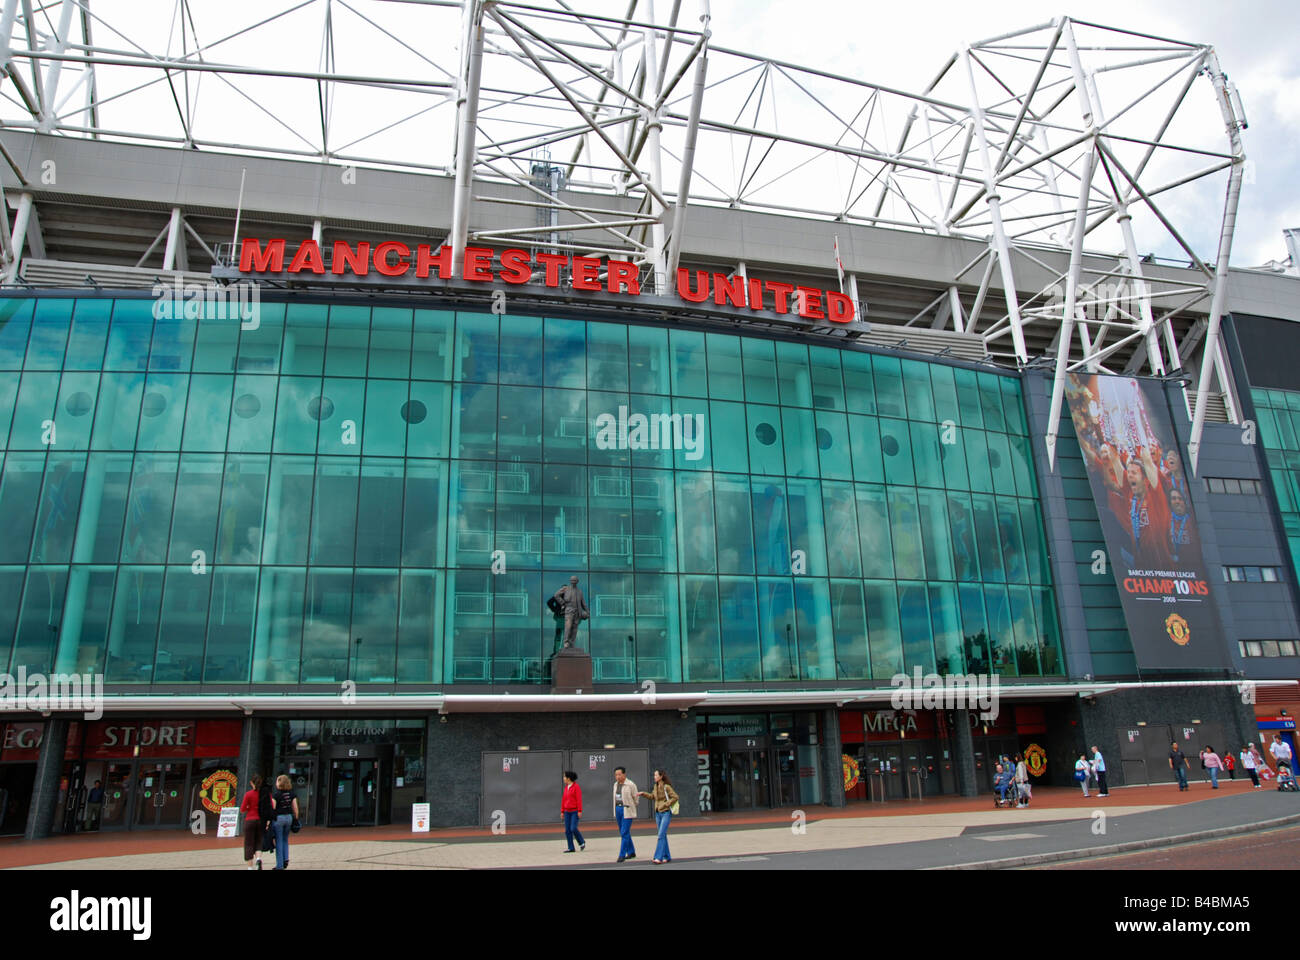 outside old trafford home of manchester united football club,england,uk - Stock Image